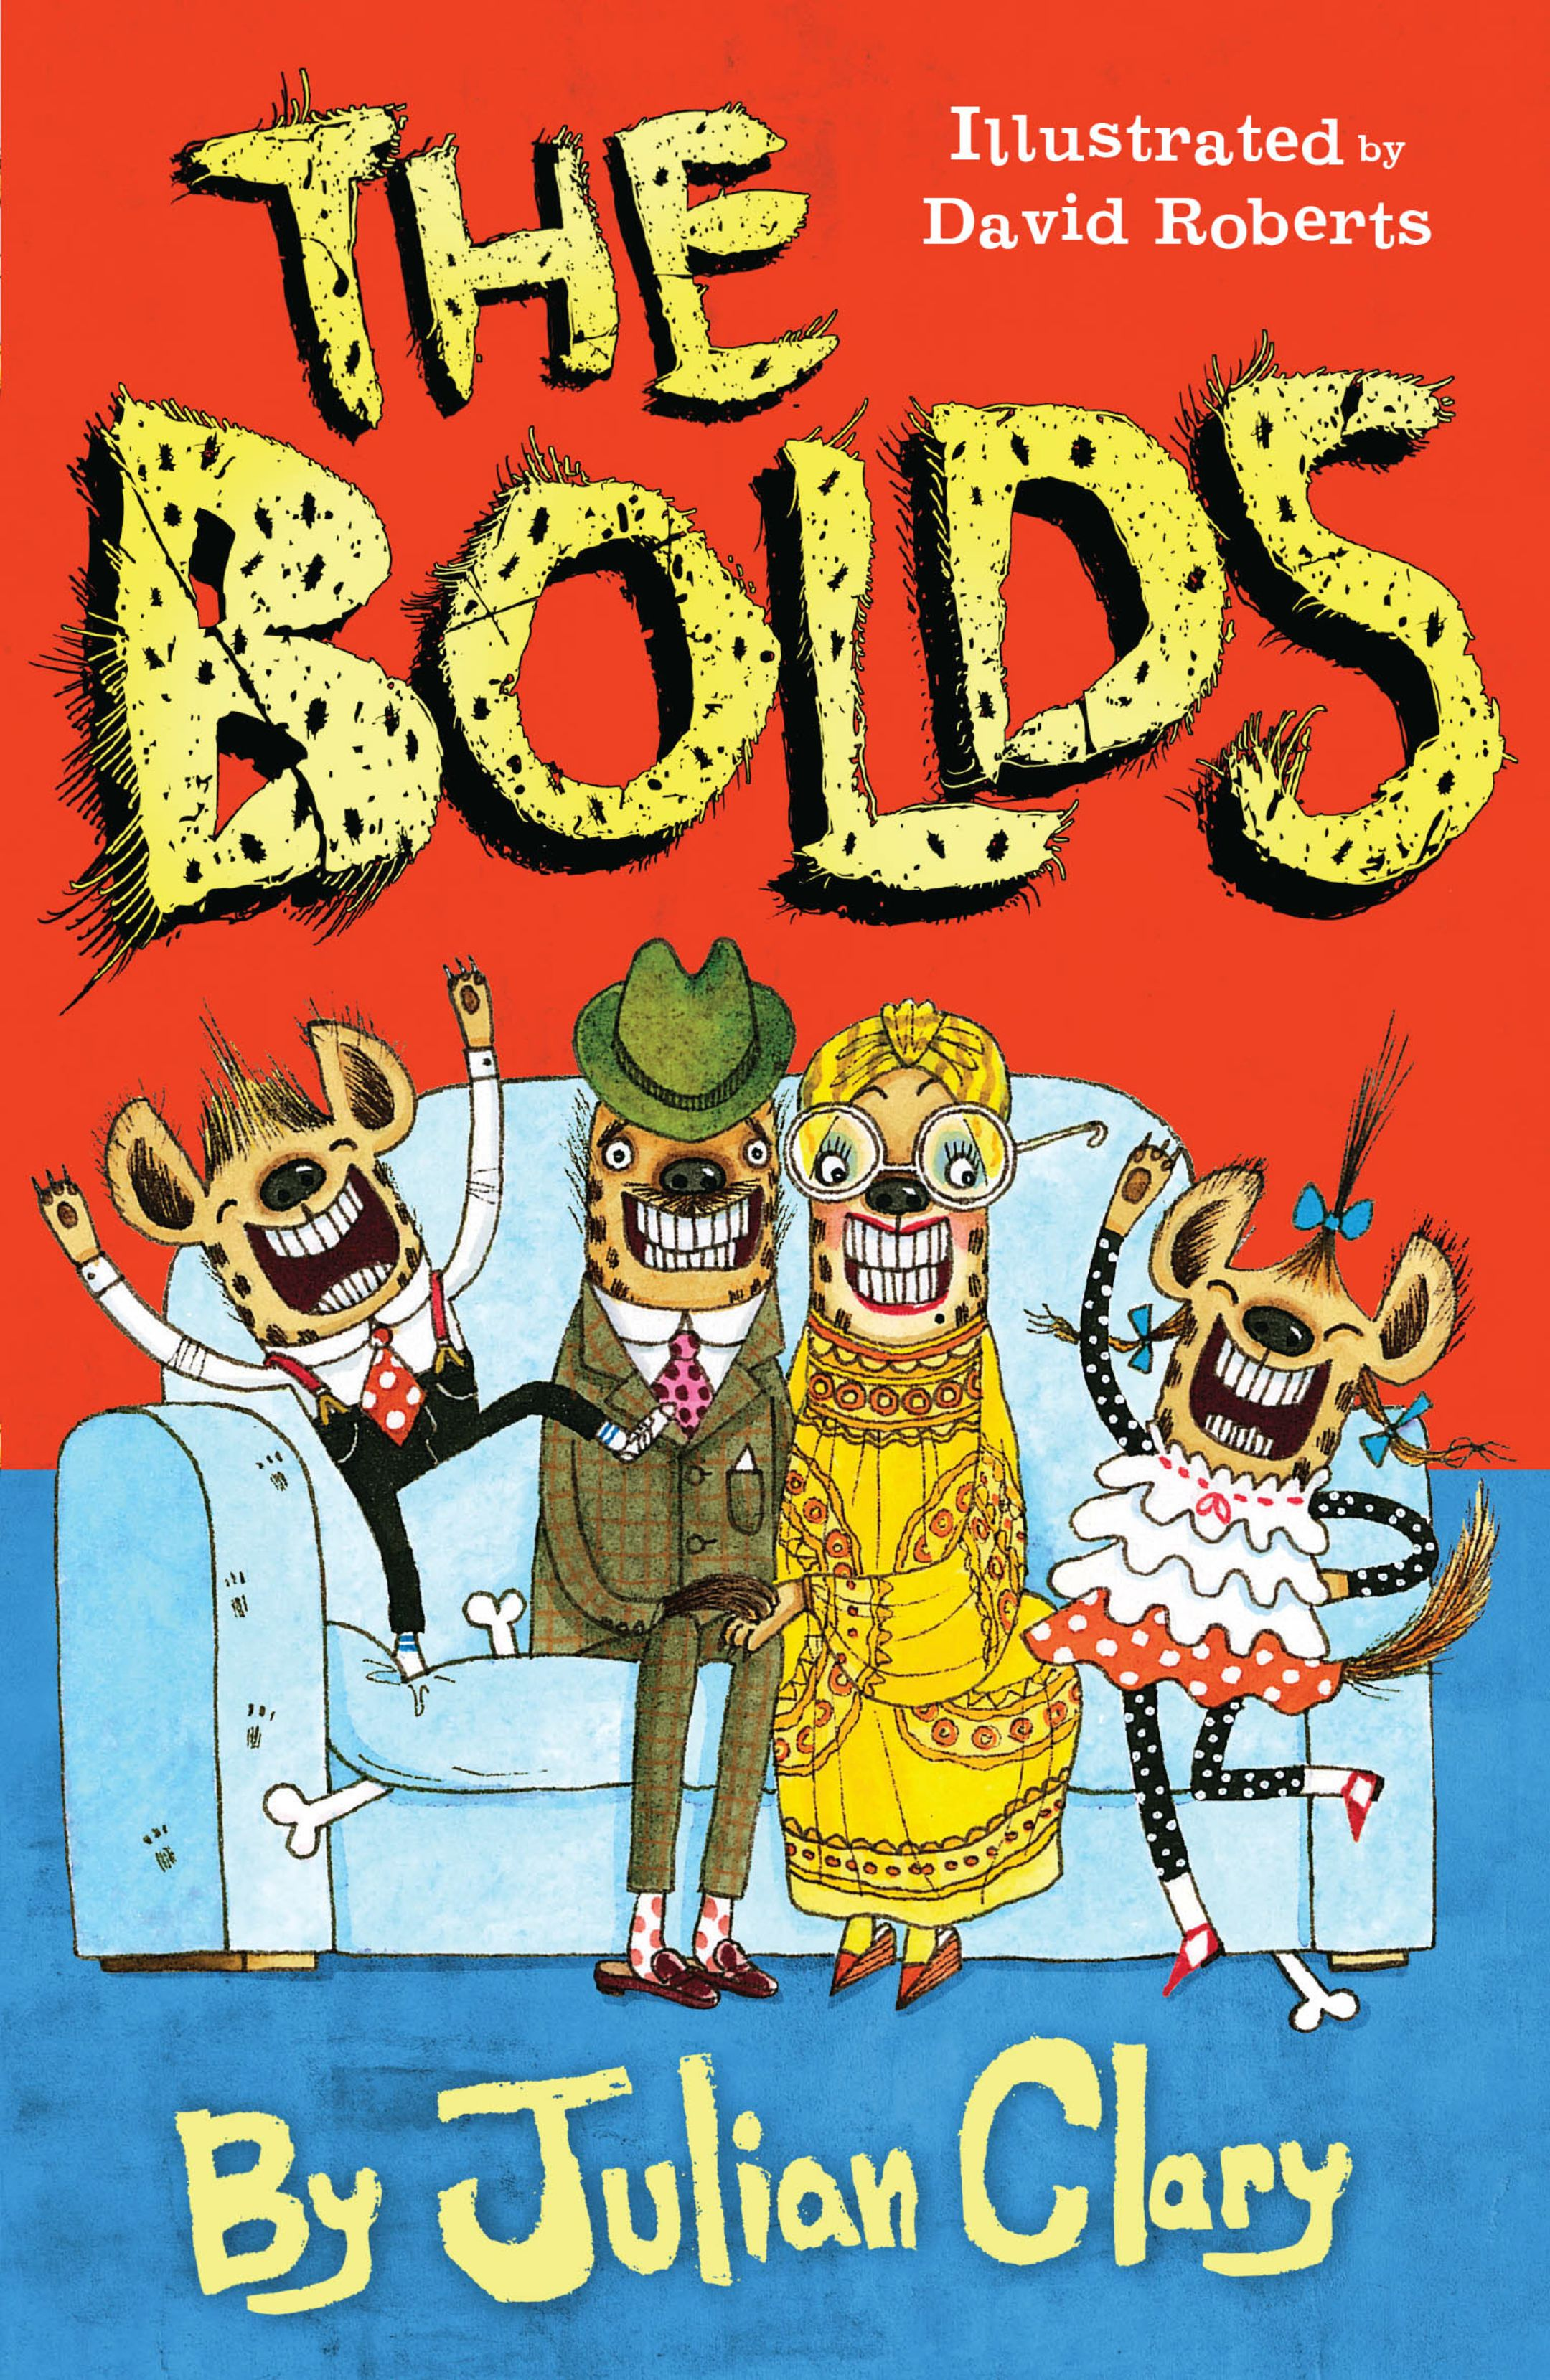 Image of the book cover for The Bolds, by Julian Clary, illustrated by David Roberts